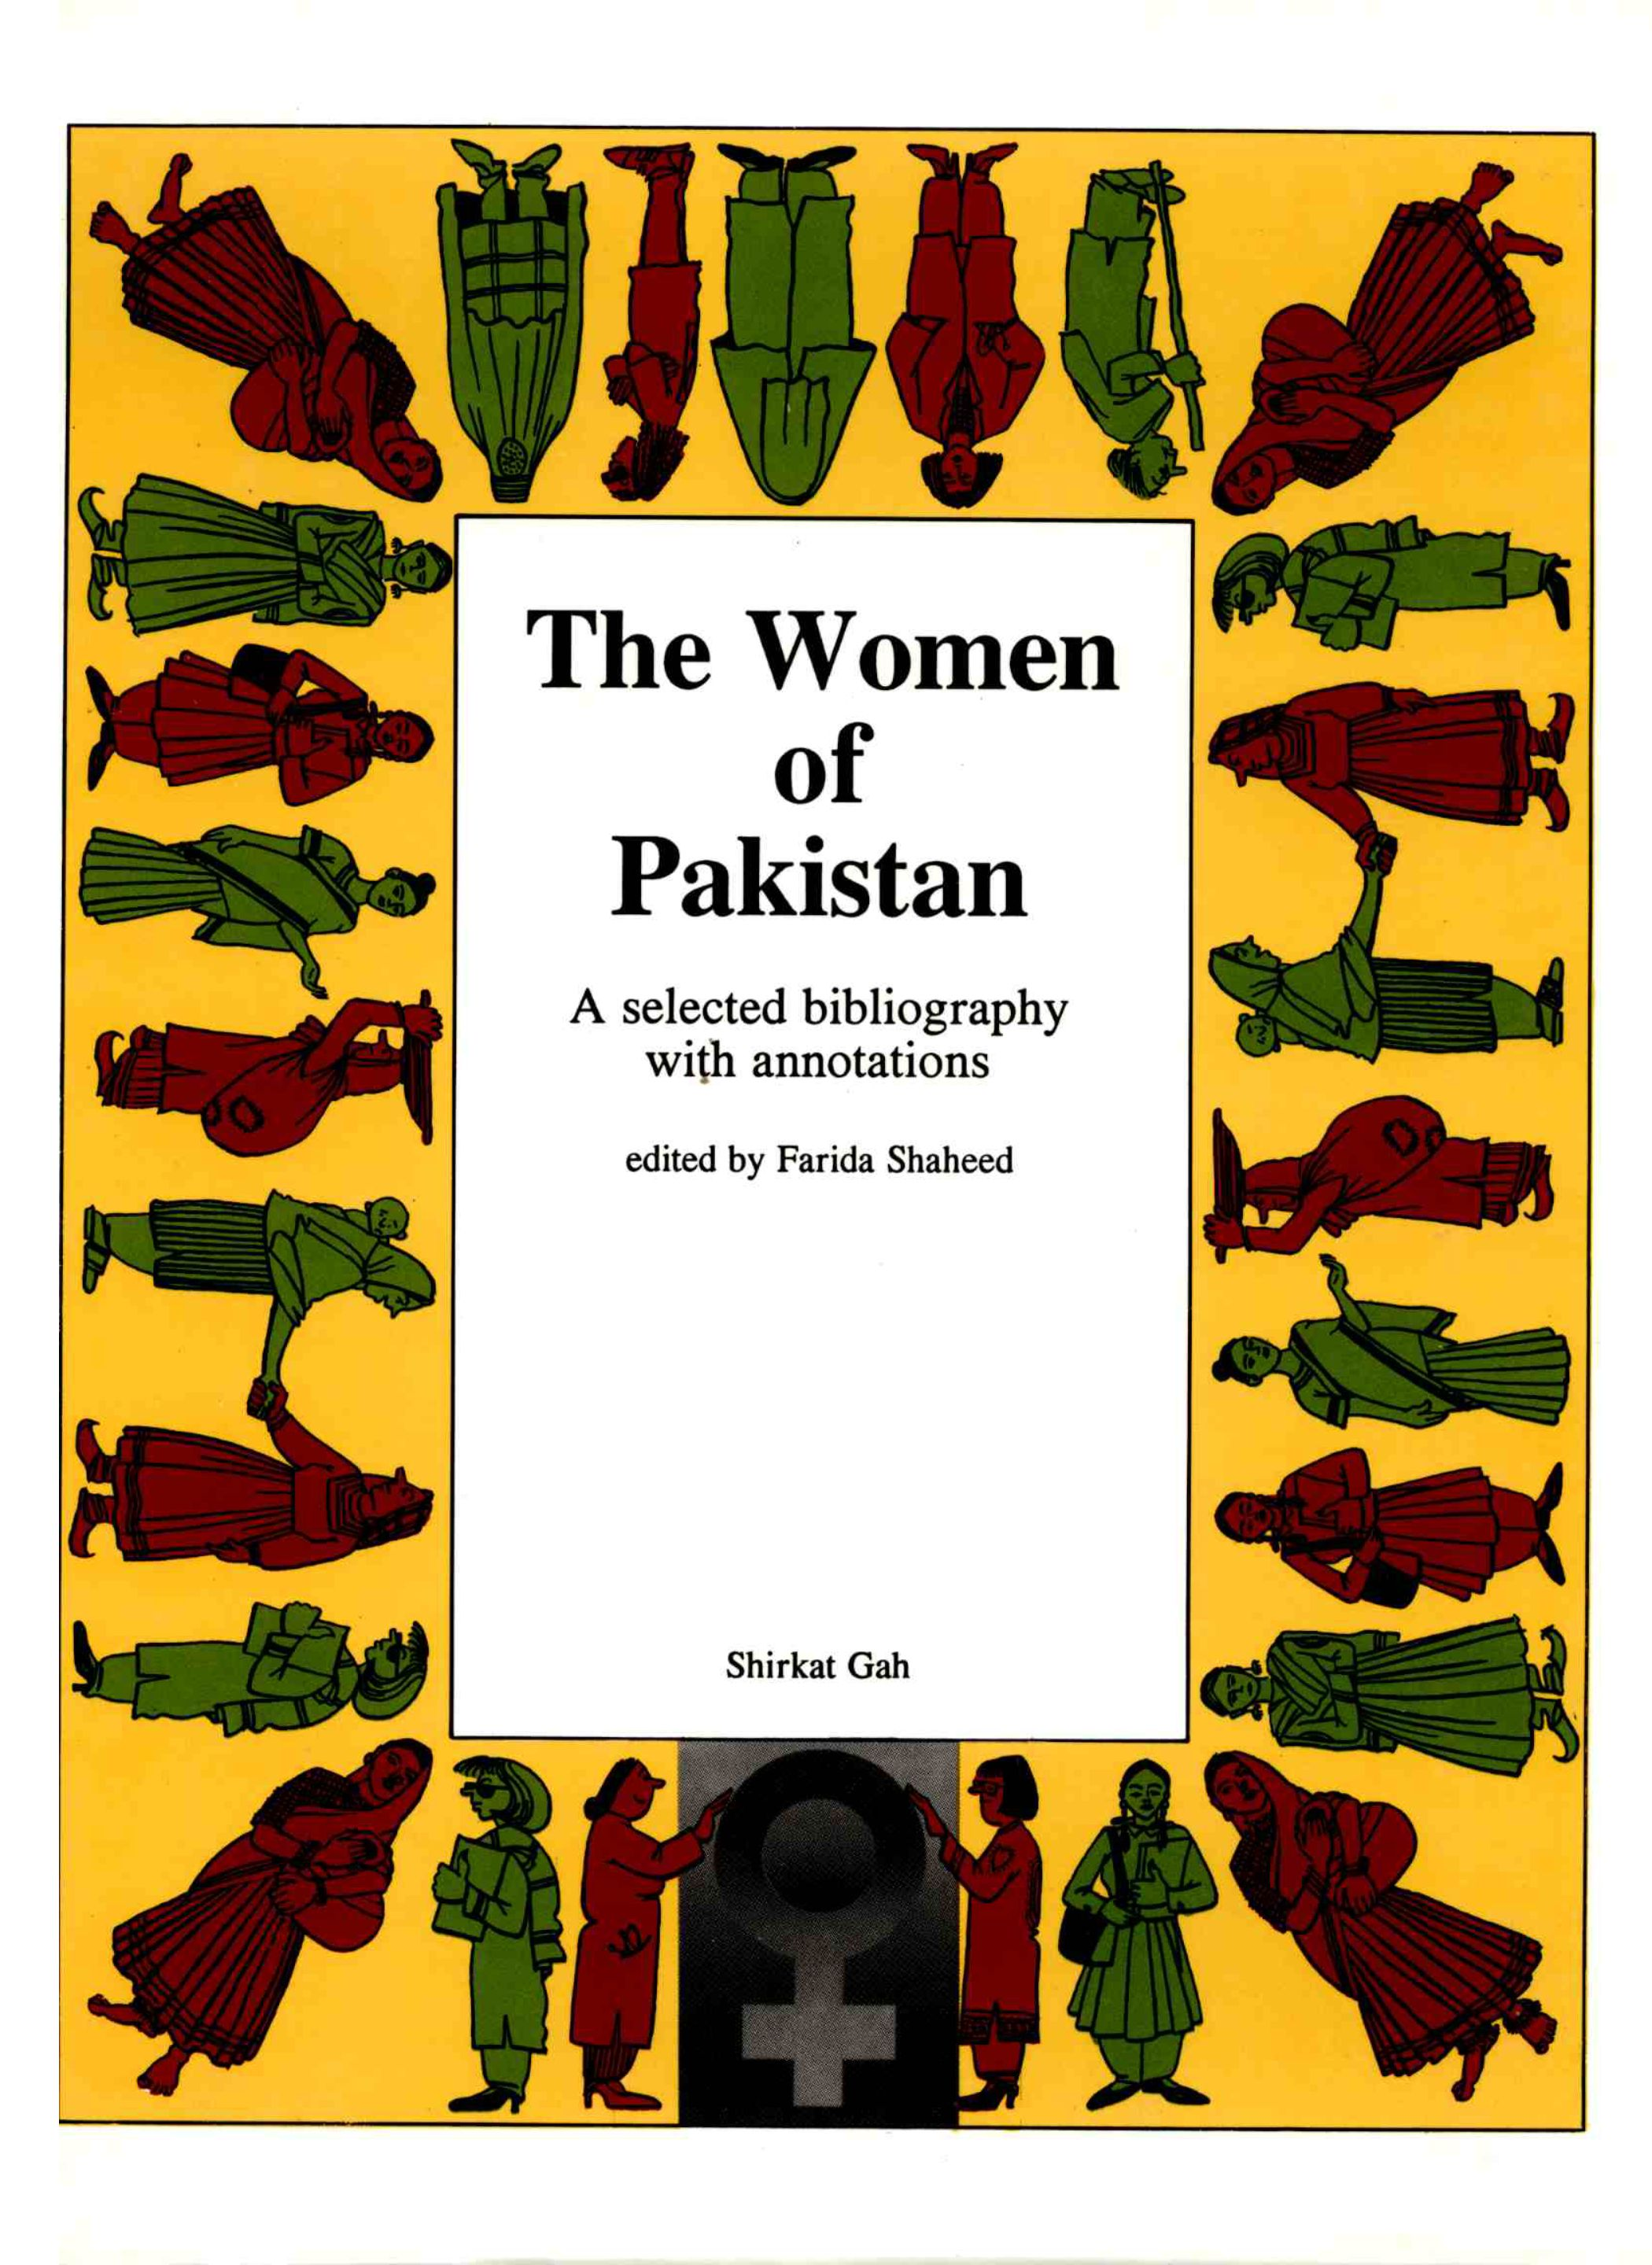 The Women of Pakistan